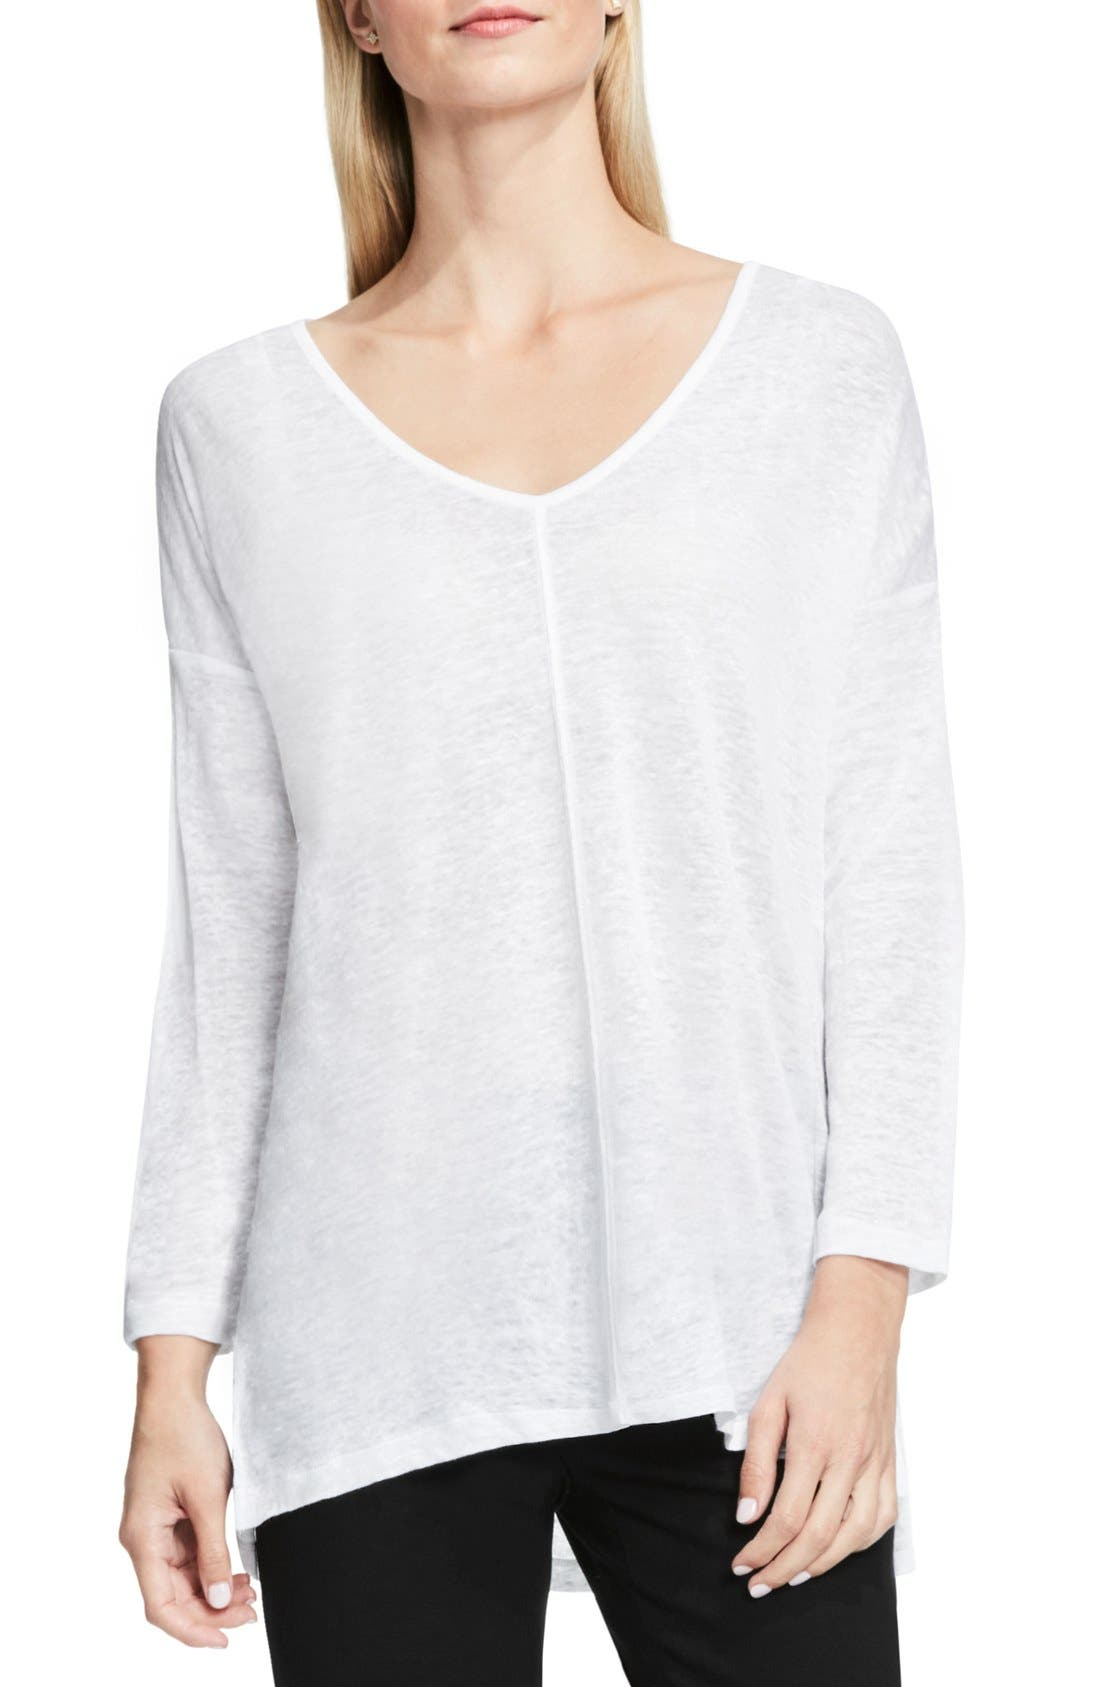 Main Image - Two by Vince Camuto Seam Detail Linen Tee